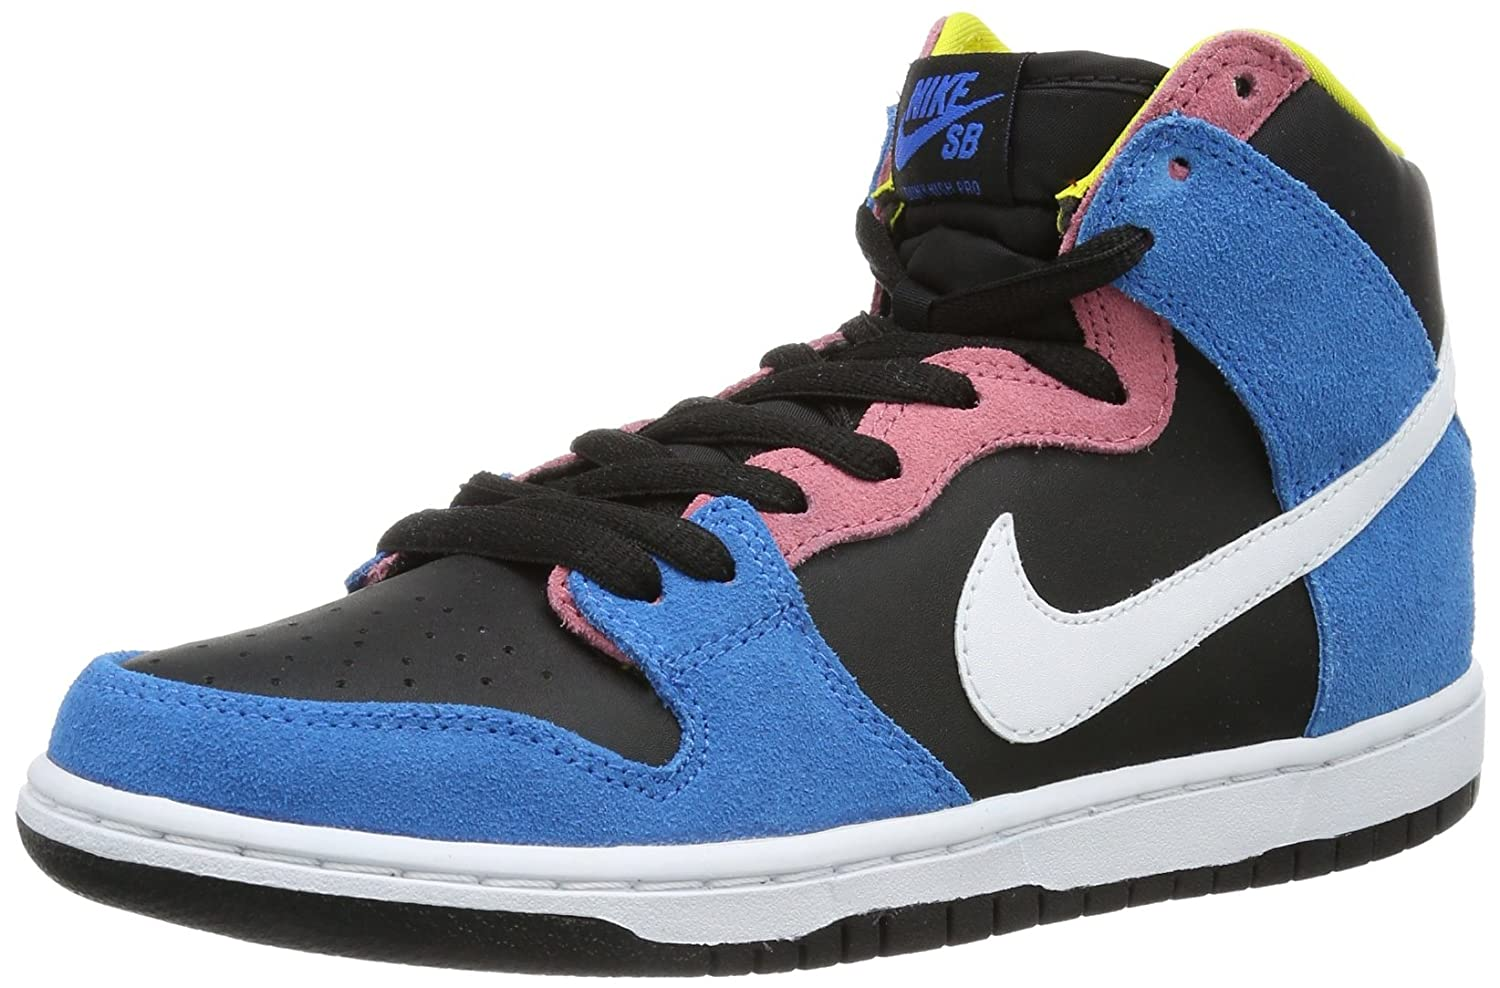 new product 14f90 f523b Amazon.com | Nike Dunk High Pro SB Skateboarding Shoes Men size 11 BHWB |  Skateboarding